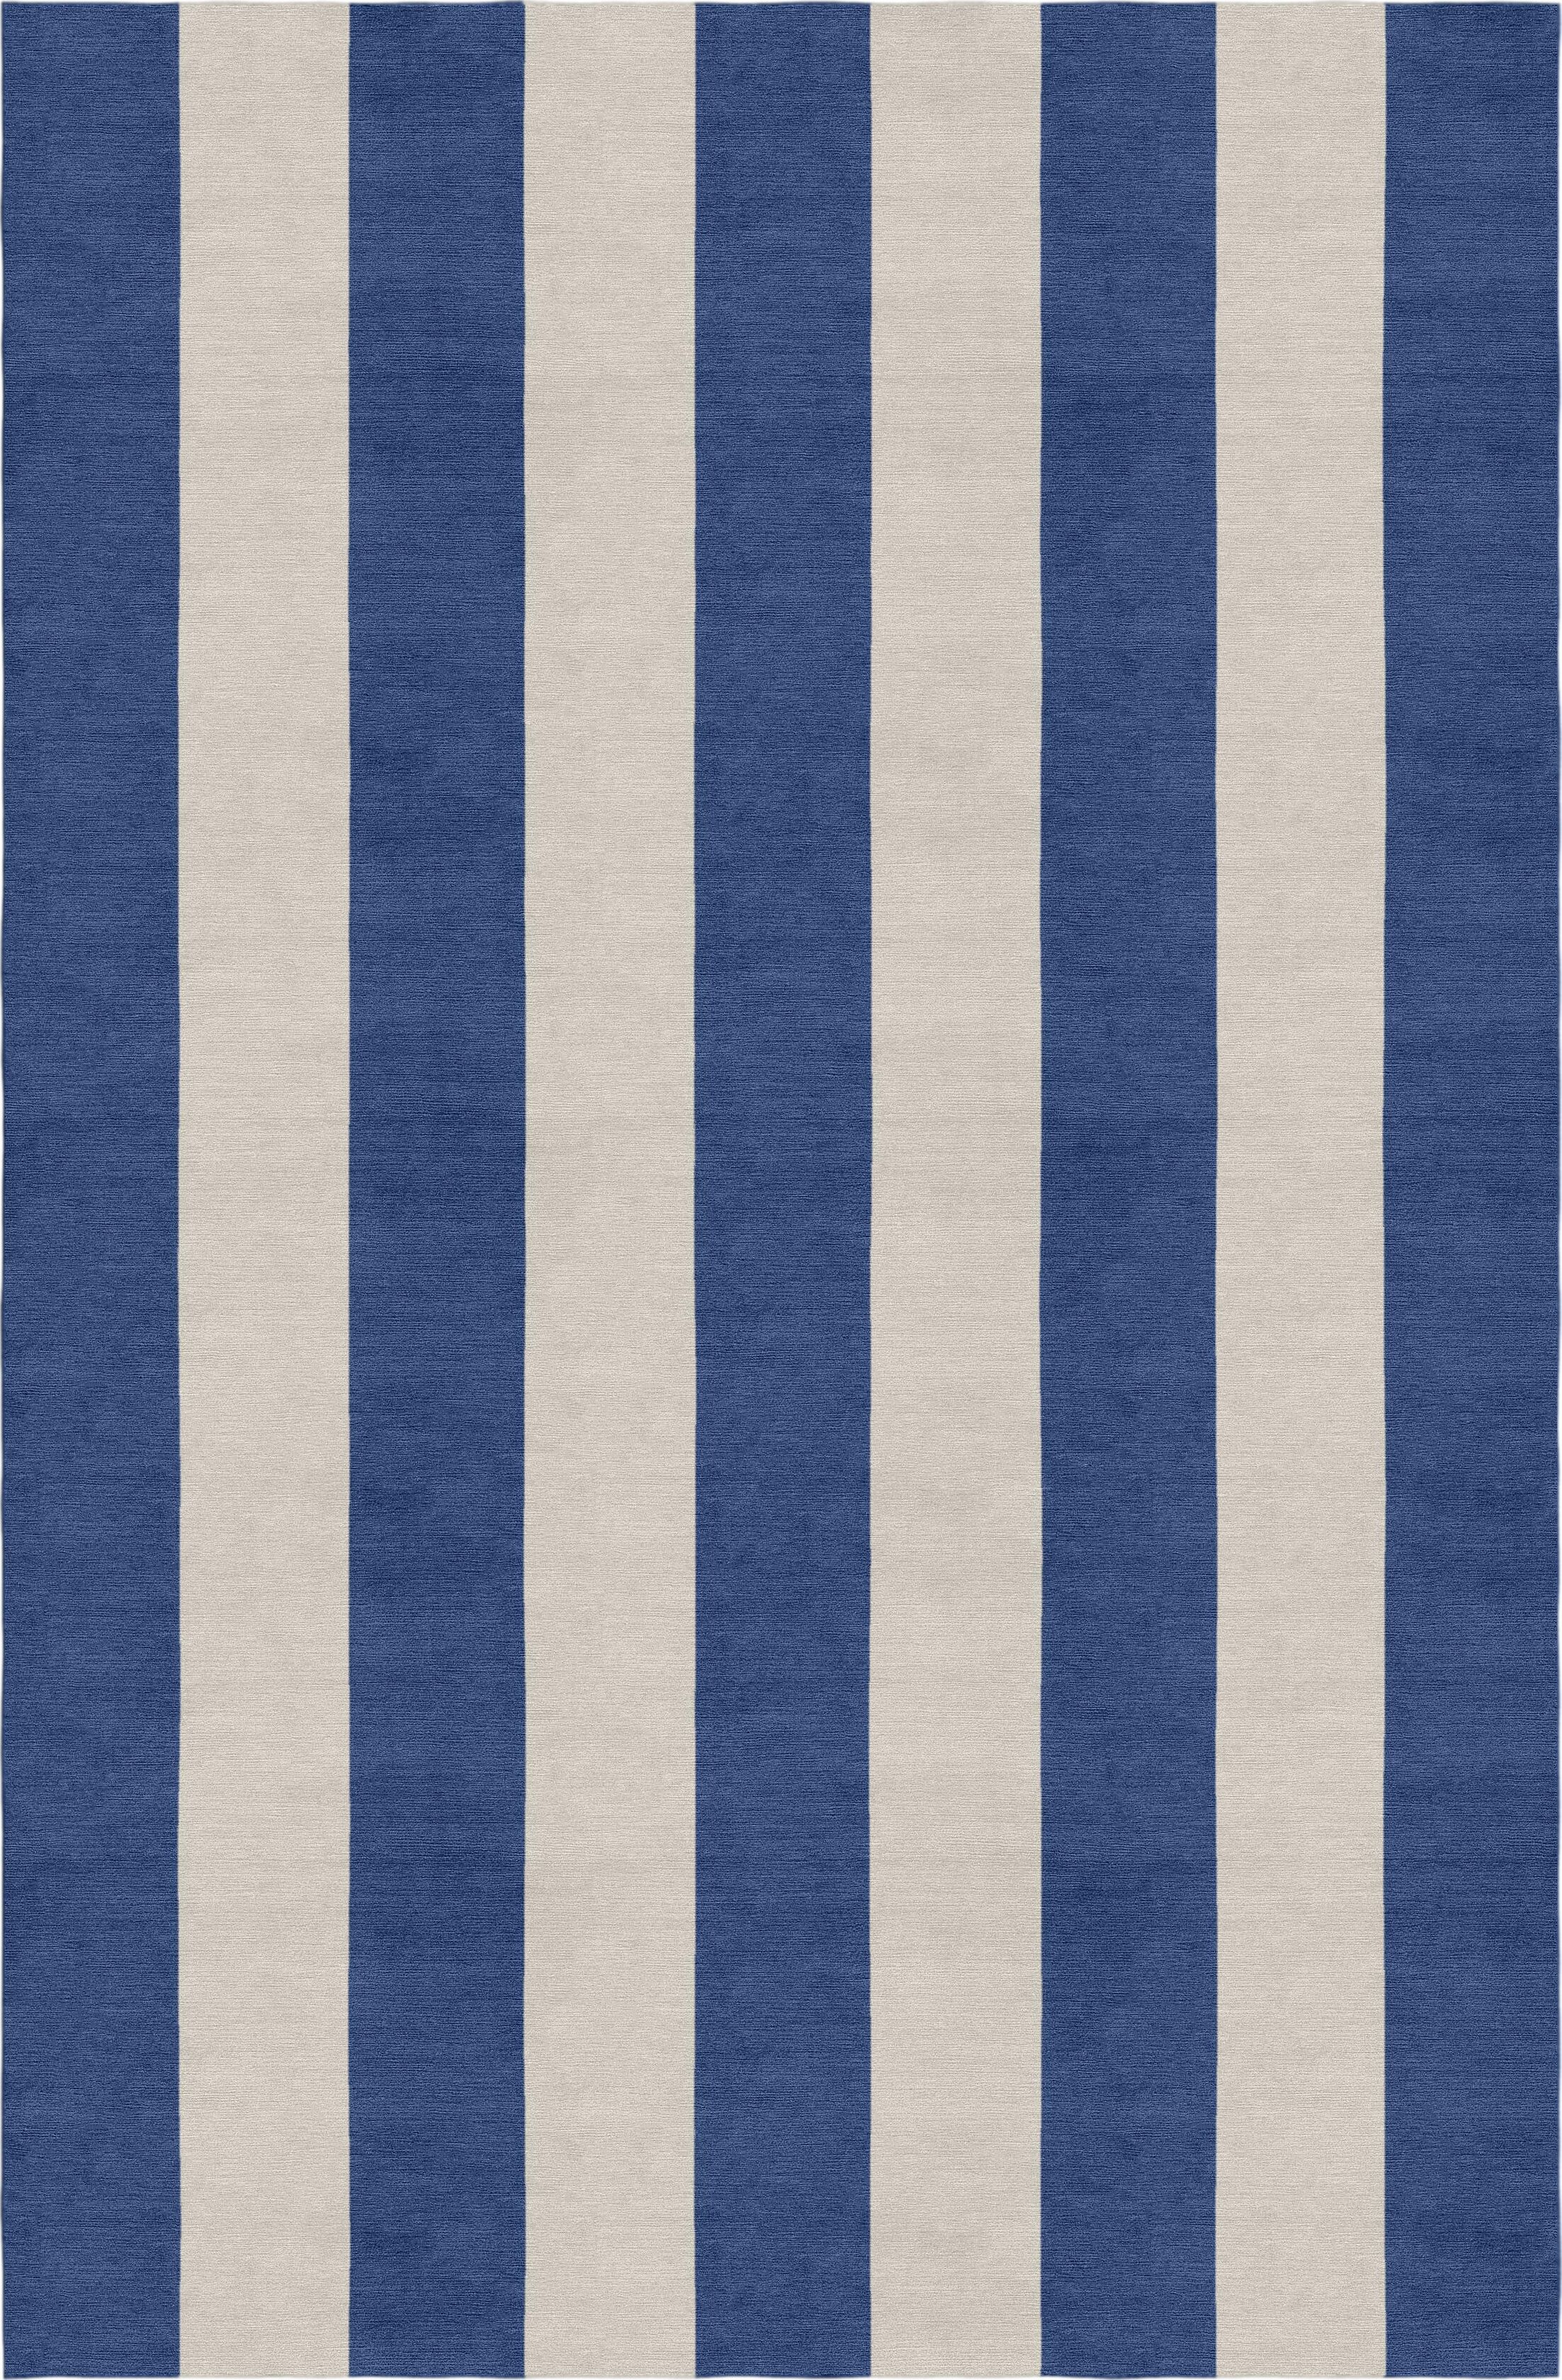 Clayborn Stripe Hand-Woven Wool Silver/Navy Blue Area Rug Rug Size: Rectangle 5' X 8'